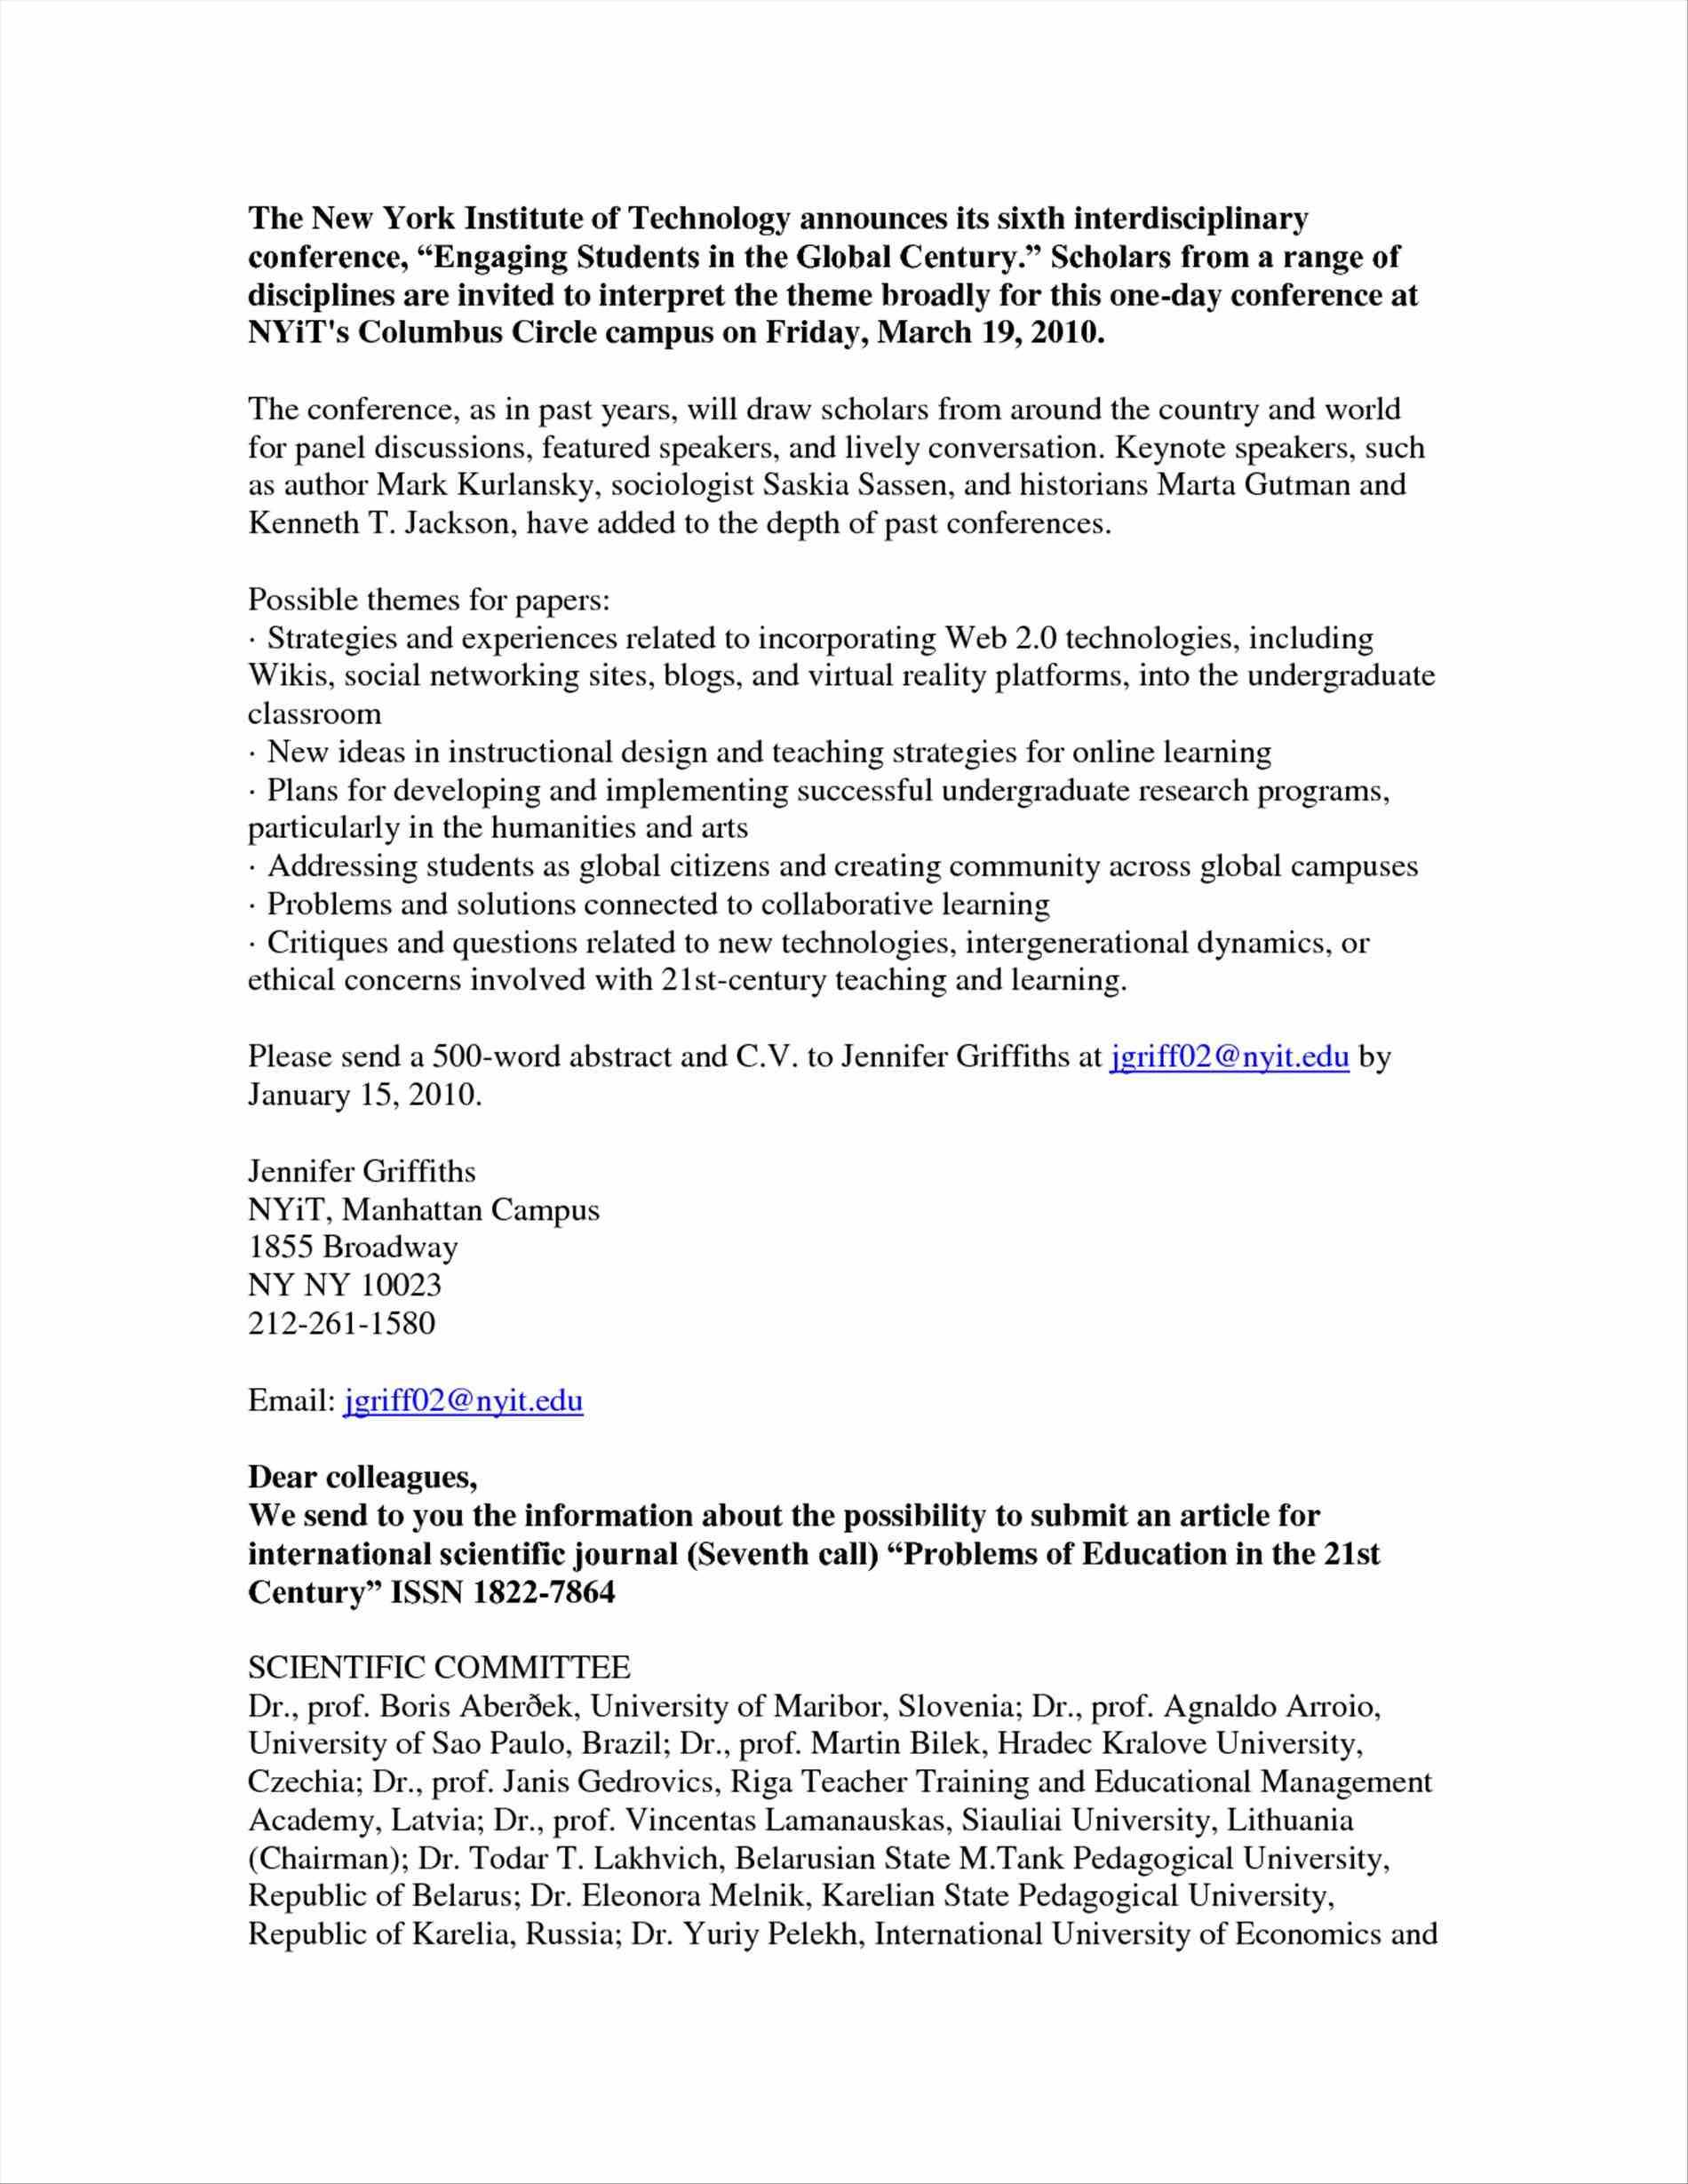 021 Apa Style Research Paper Template Format Soap An Example inside Scientific Paper Template Word 2010